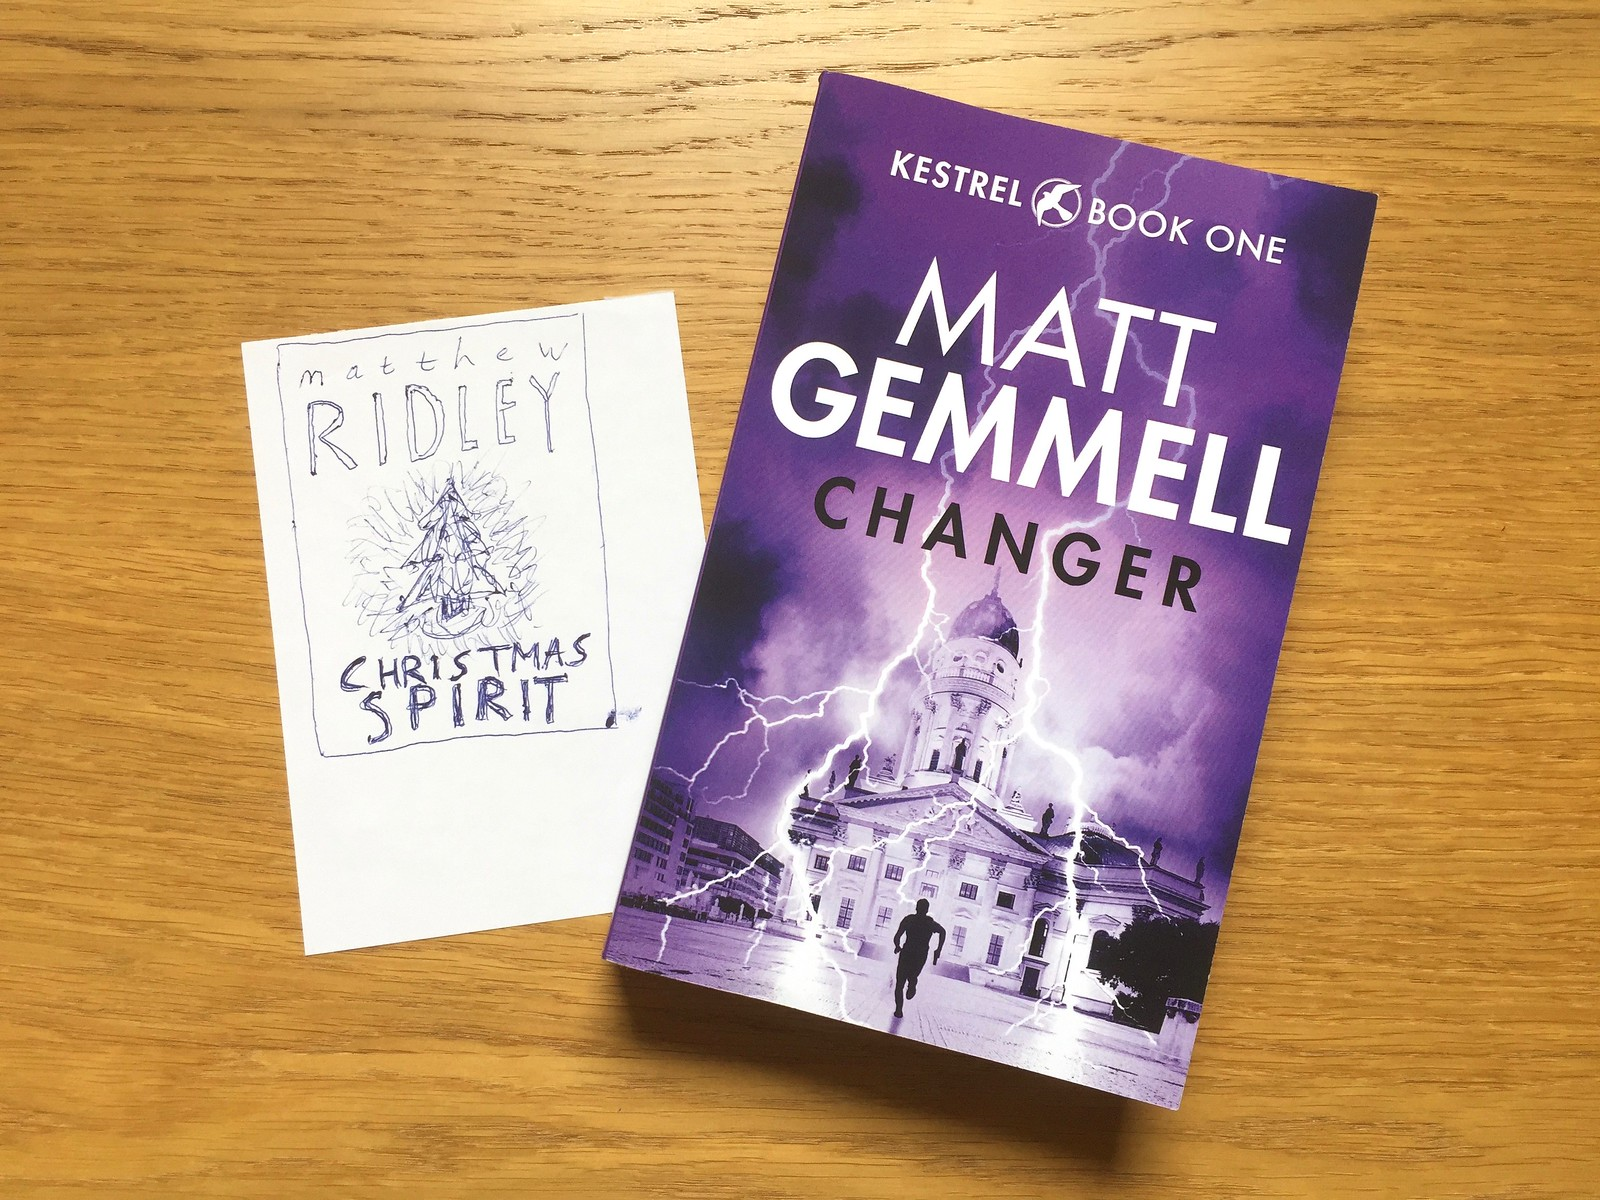 Photo of Matt Gemmell's novel, CHANGER, alongside his hand-drawn childhood book cover.